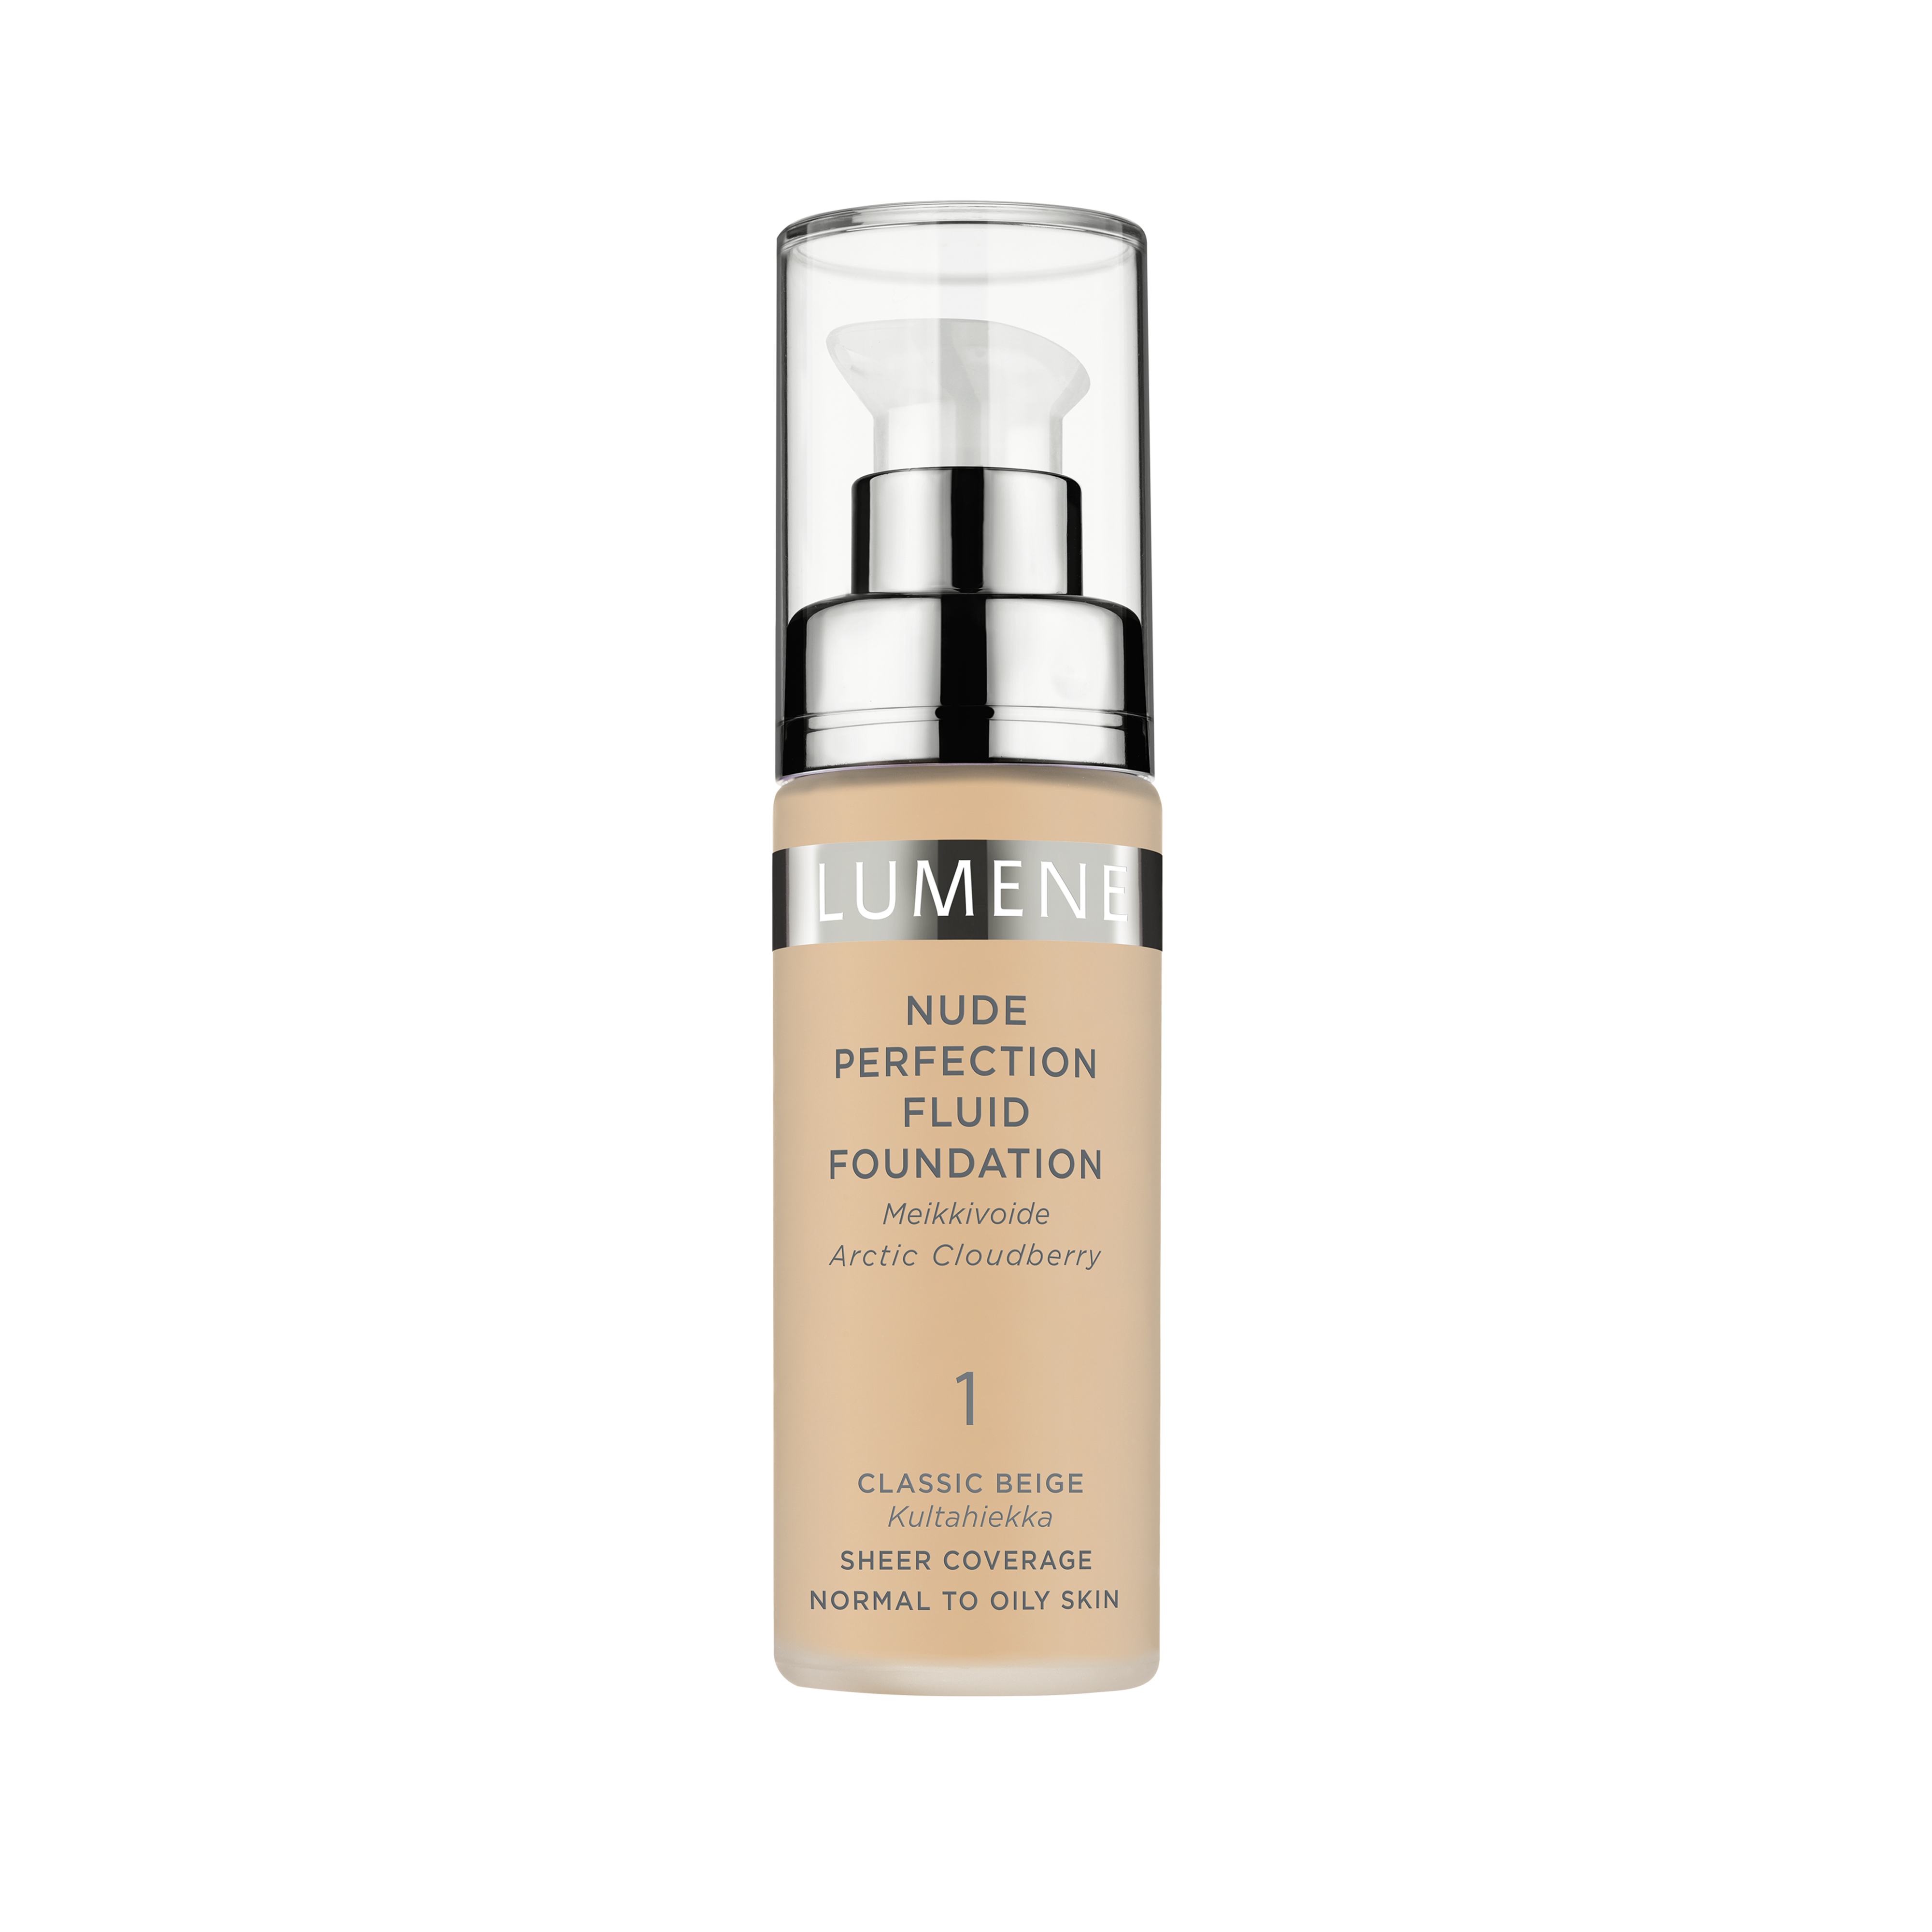 Nude Perfection Fluid Foundation 1 Classic Beige